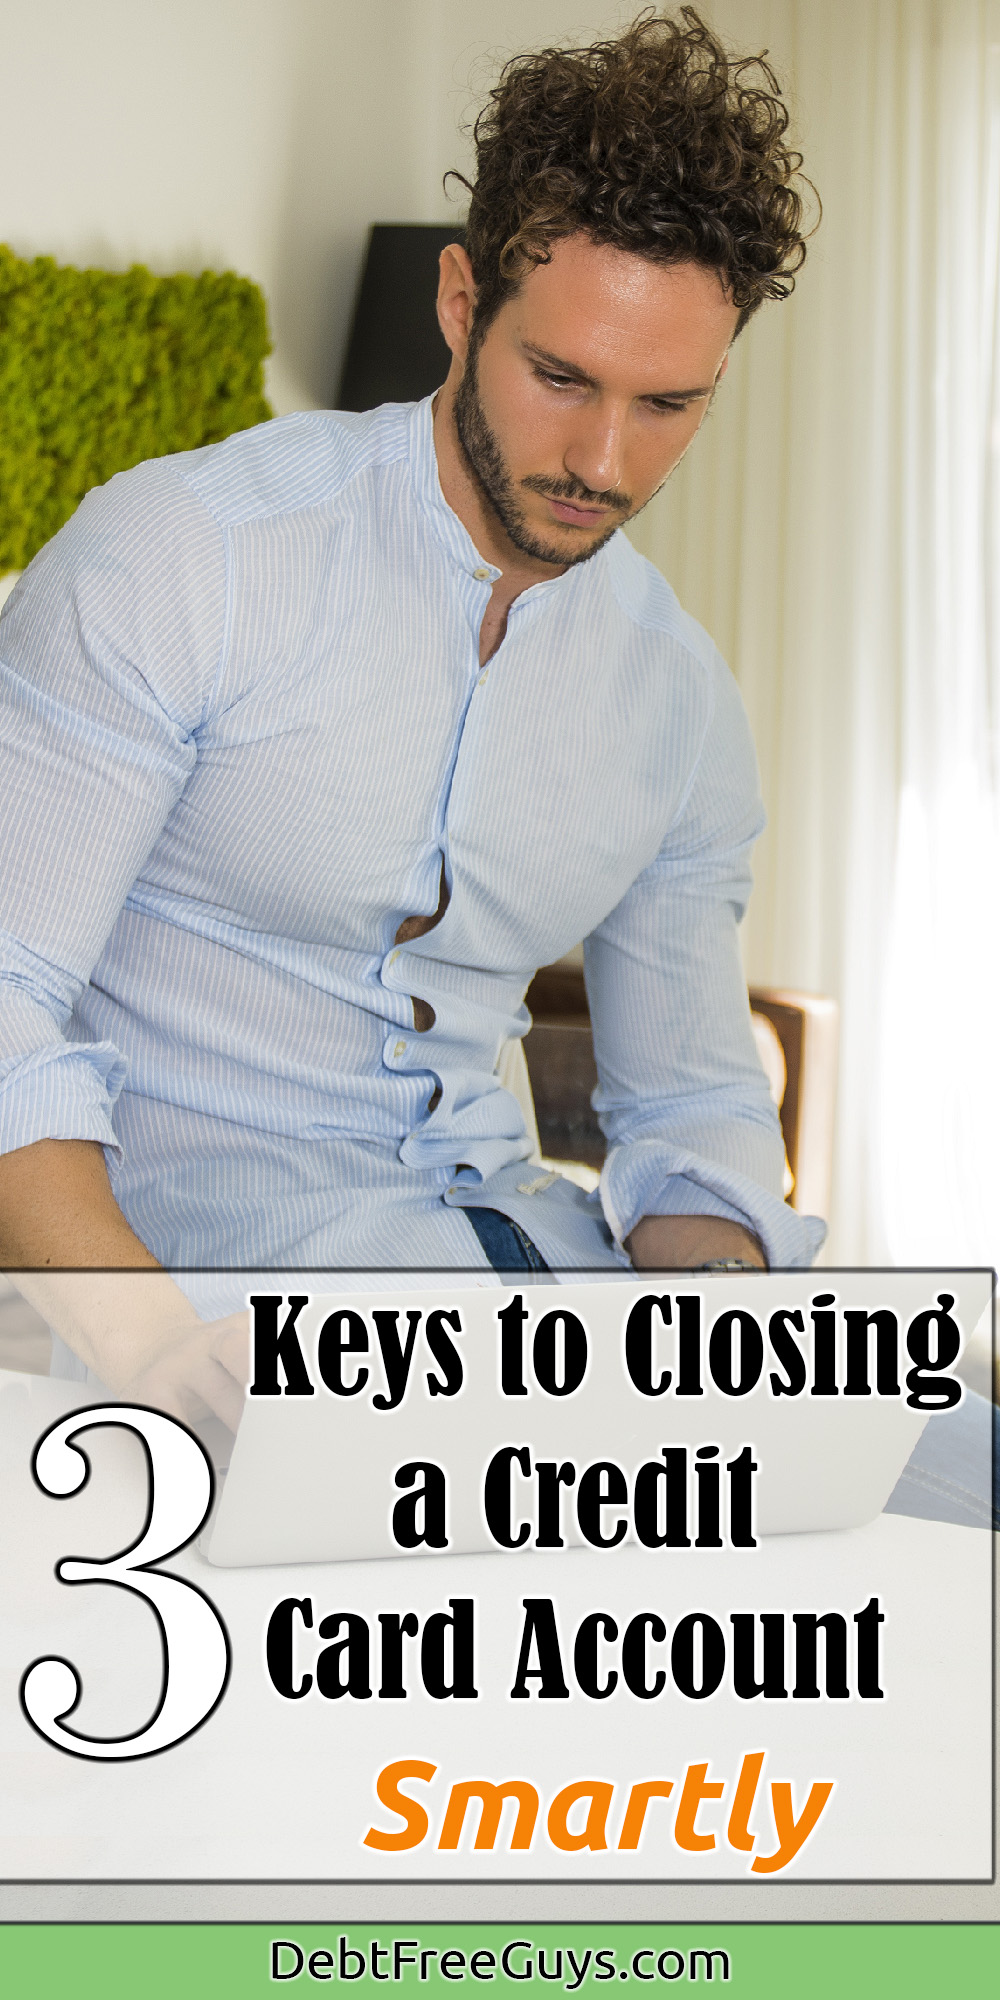 Having a good credit score. Until now! This article will give you the easy squeasy of the ins and outs of closing your credit cards to improve your credit score. You've gotta check this out to shut your cards down.